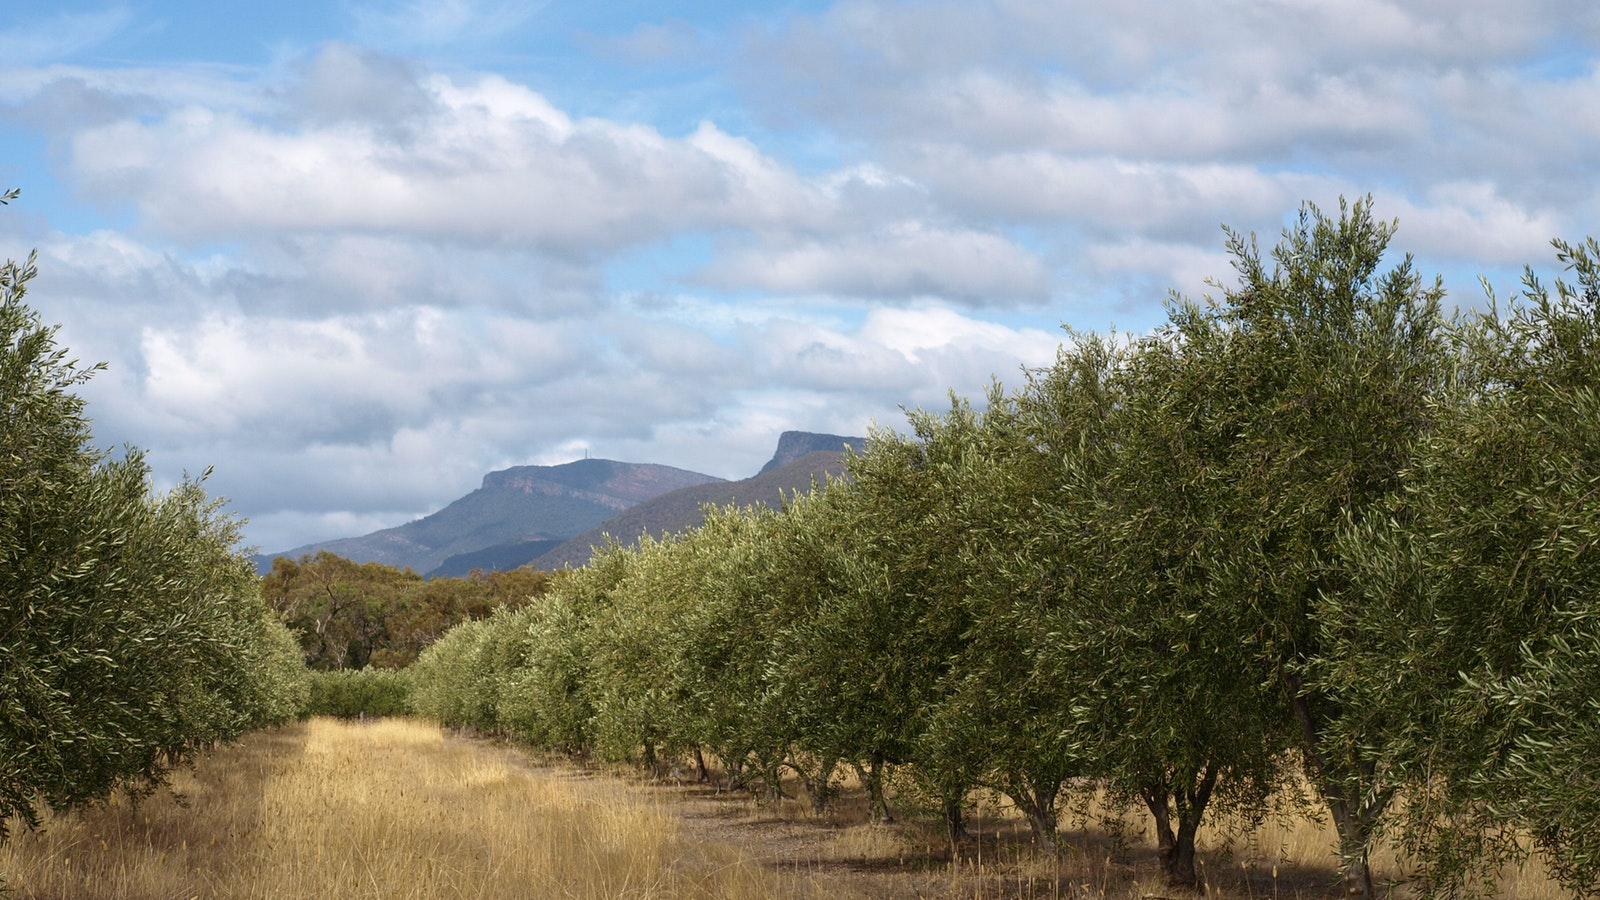 Red Rock Olives, view of tress under Mt William